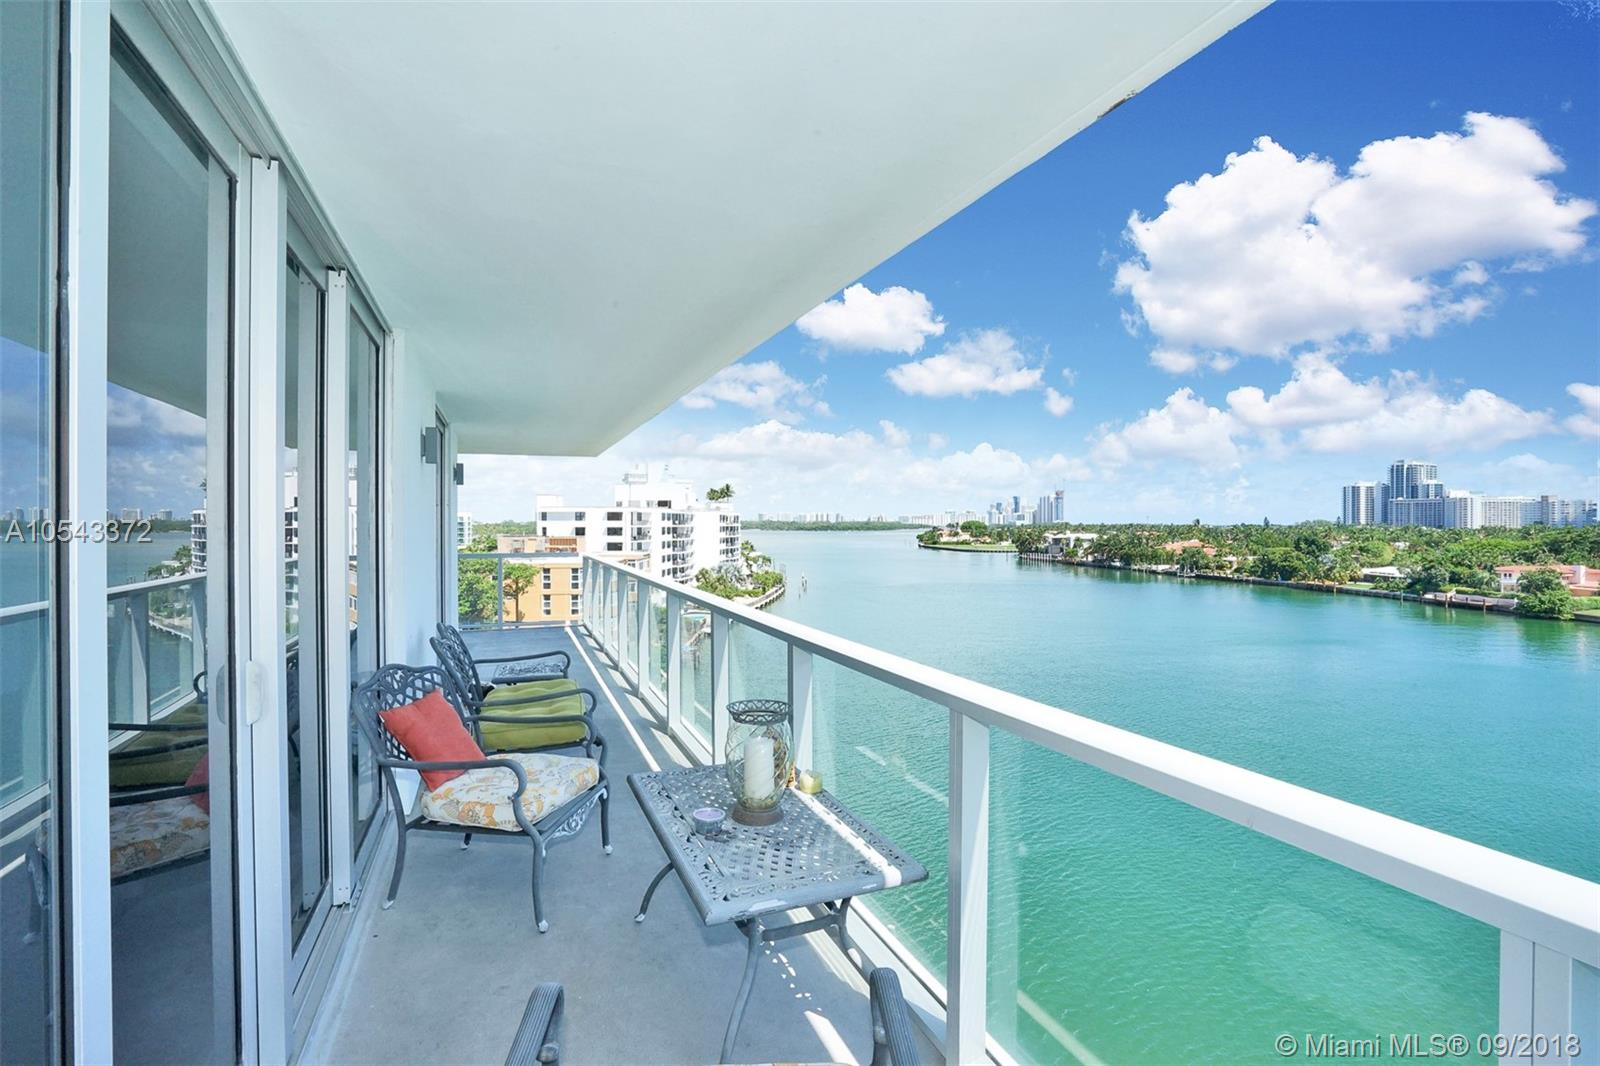 LIVE IN PARADISE - Brand new building, built in 2016! Incredible, custom waterfront residence featuring an open floor plan, porcelain white tile floors and contemporary finishes throughout. This 1,164 SF unit has views of Biscayne Bay from every room! Living area offers floor to ceiling glass doors with panoramic views of the intra-coastal. Unit also offers spacious bedrooms, high efficiency A/C, huge wrap-around balcony, walk-in closets, washer/dryer in unit and more. Harbour Park offers a rooftop pool overlooking Biscayne Bay, with amazing 360 degree water views. Secured lobby, and unit comes with 2 parking spaces.